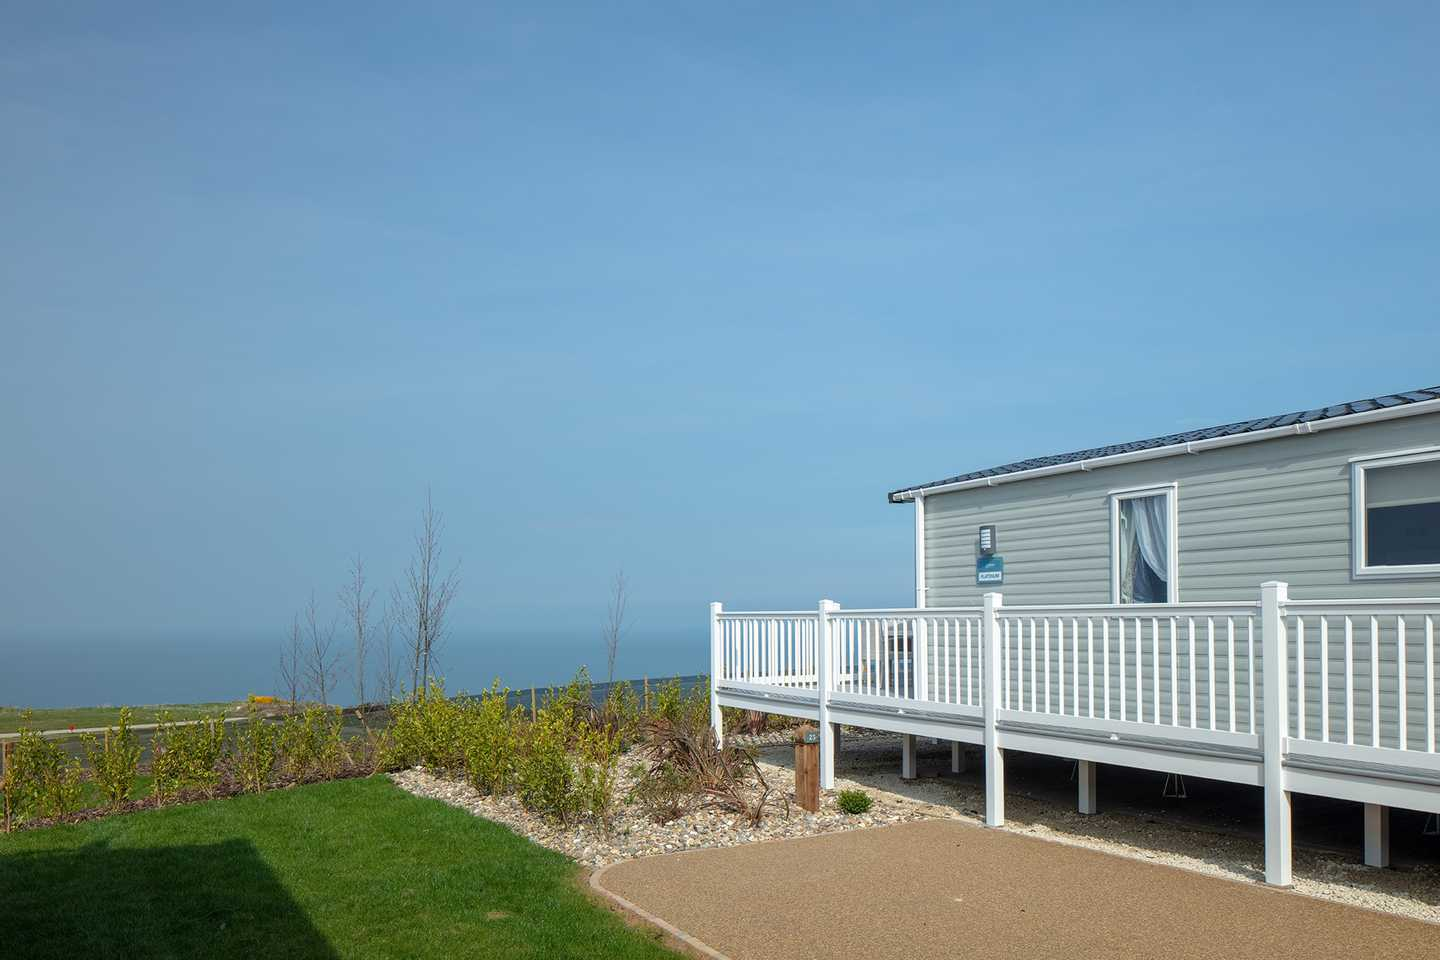 Views from the caravan at Reighton Sands